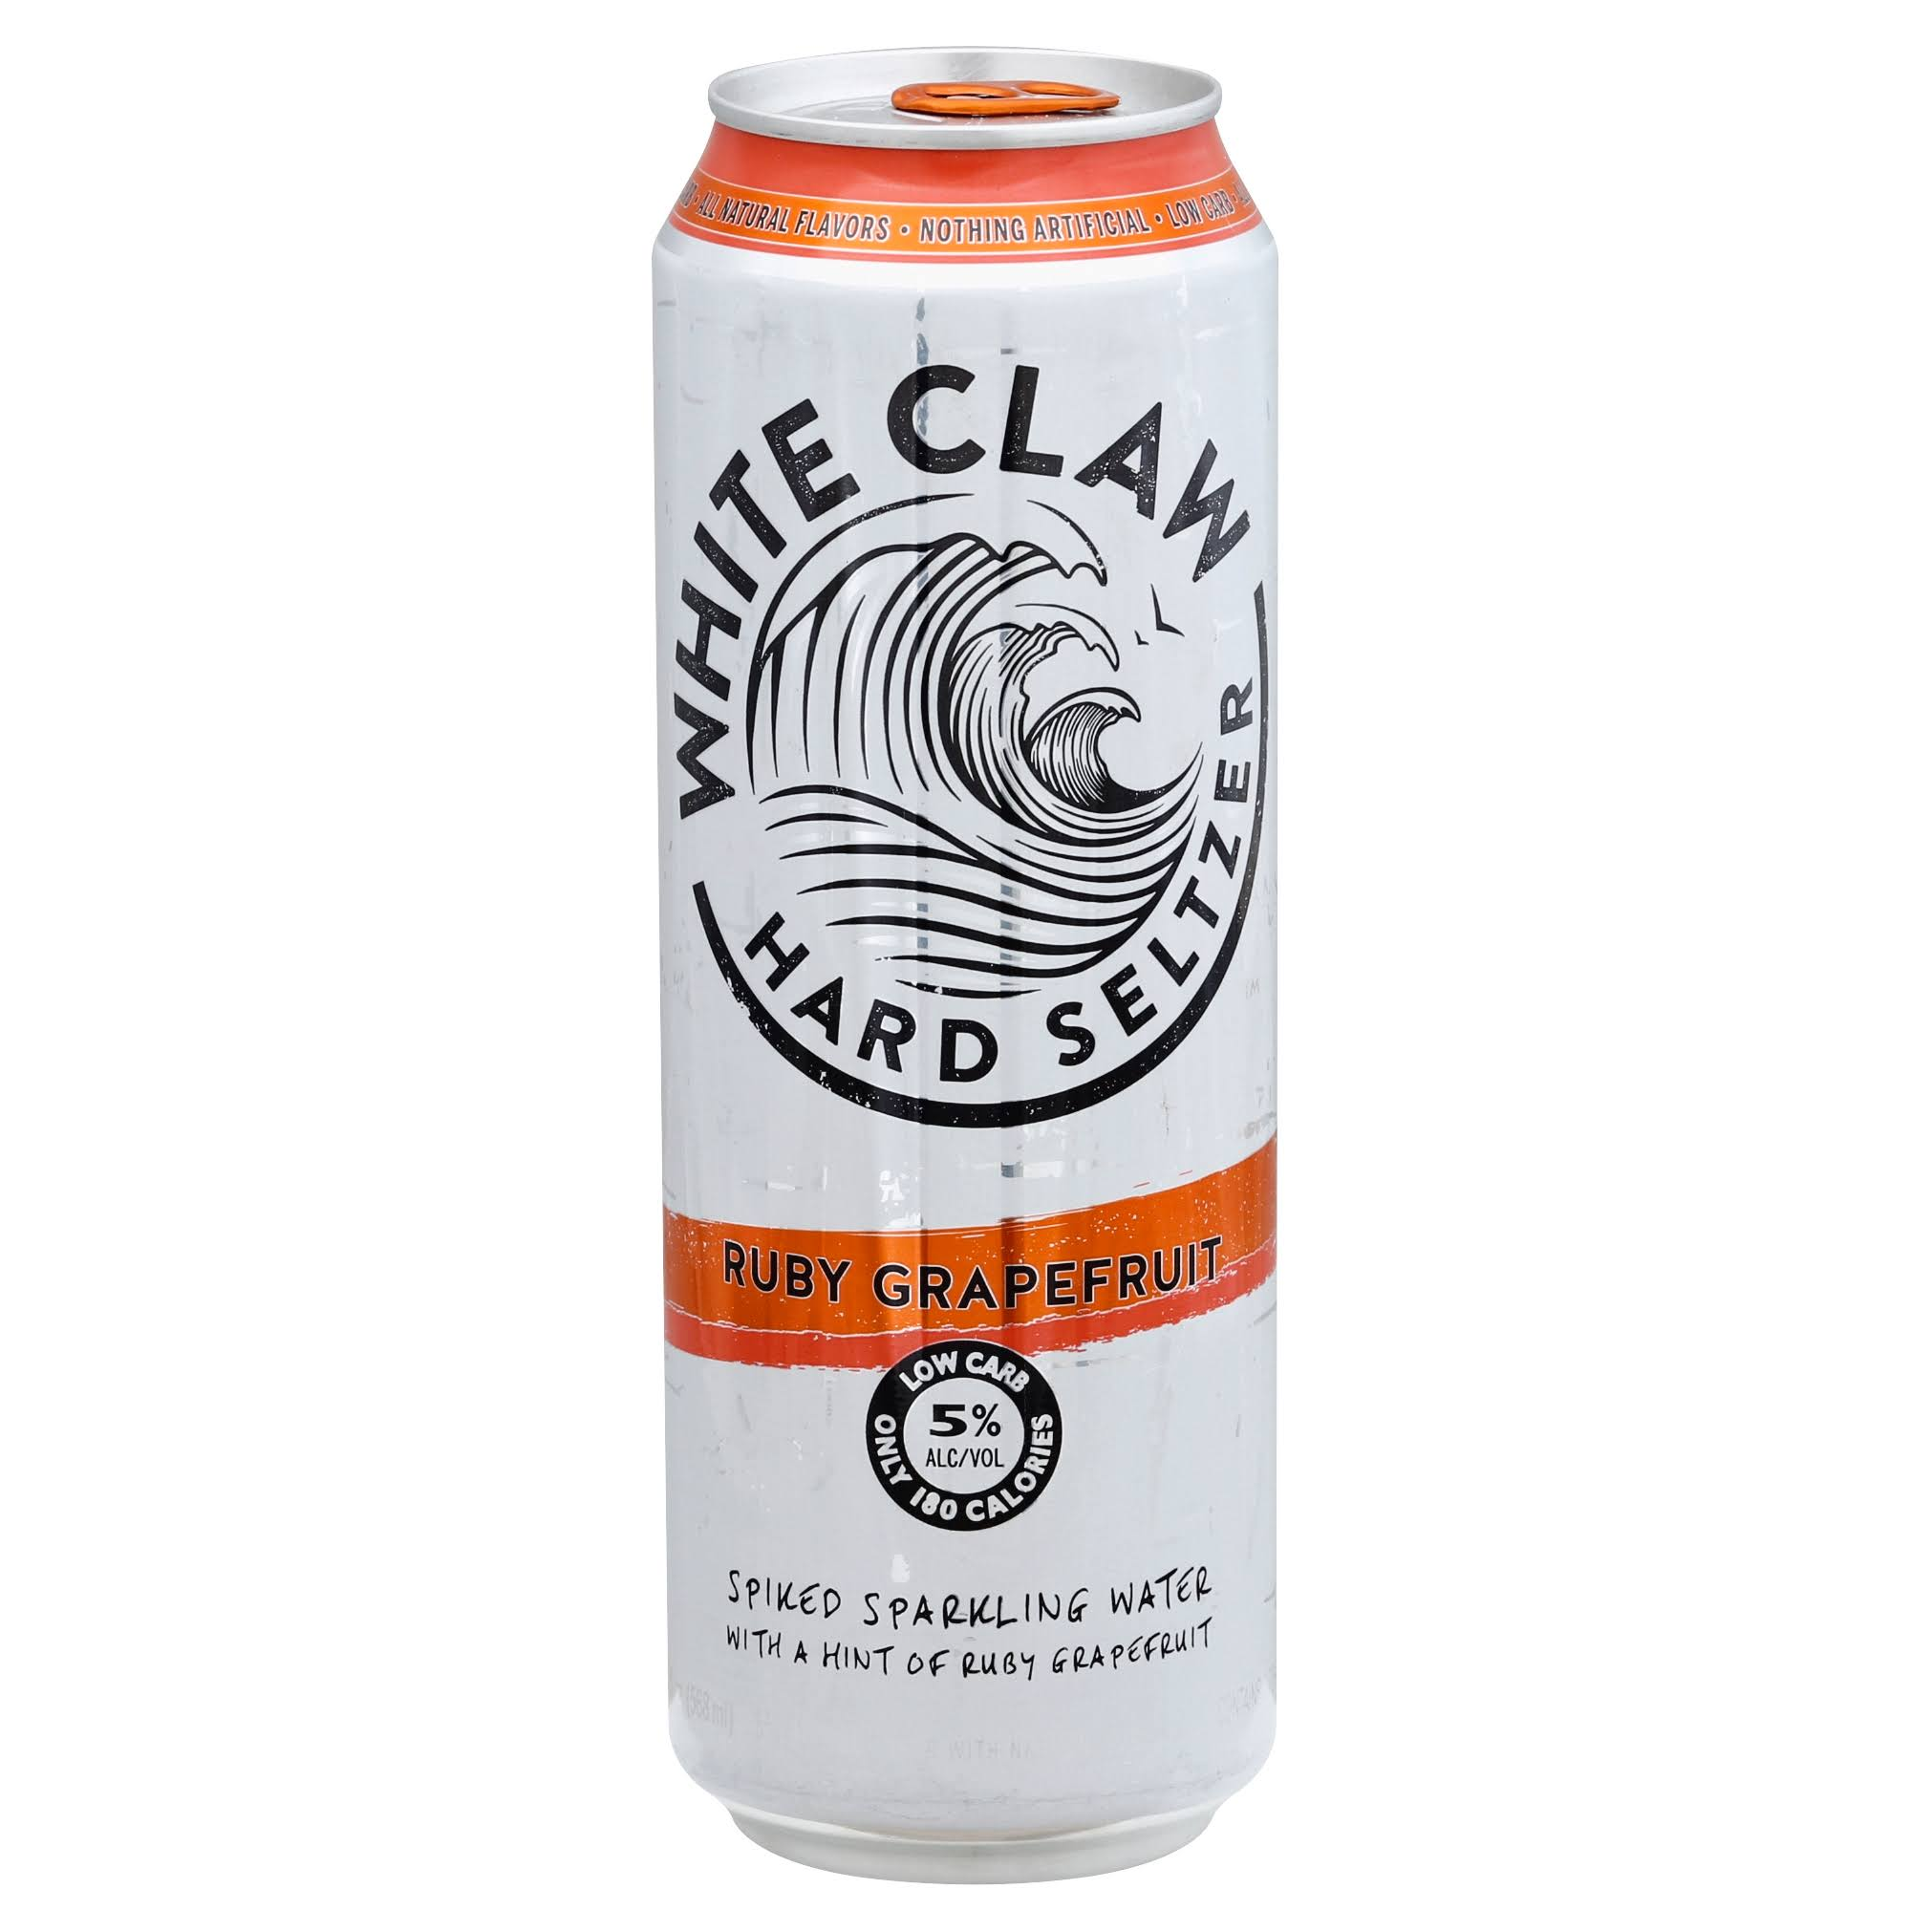 White Claw Beer, Ruby Grapefruit - 19.2 fl oz